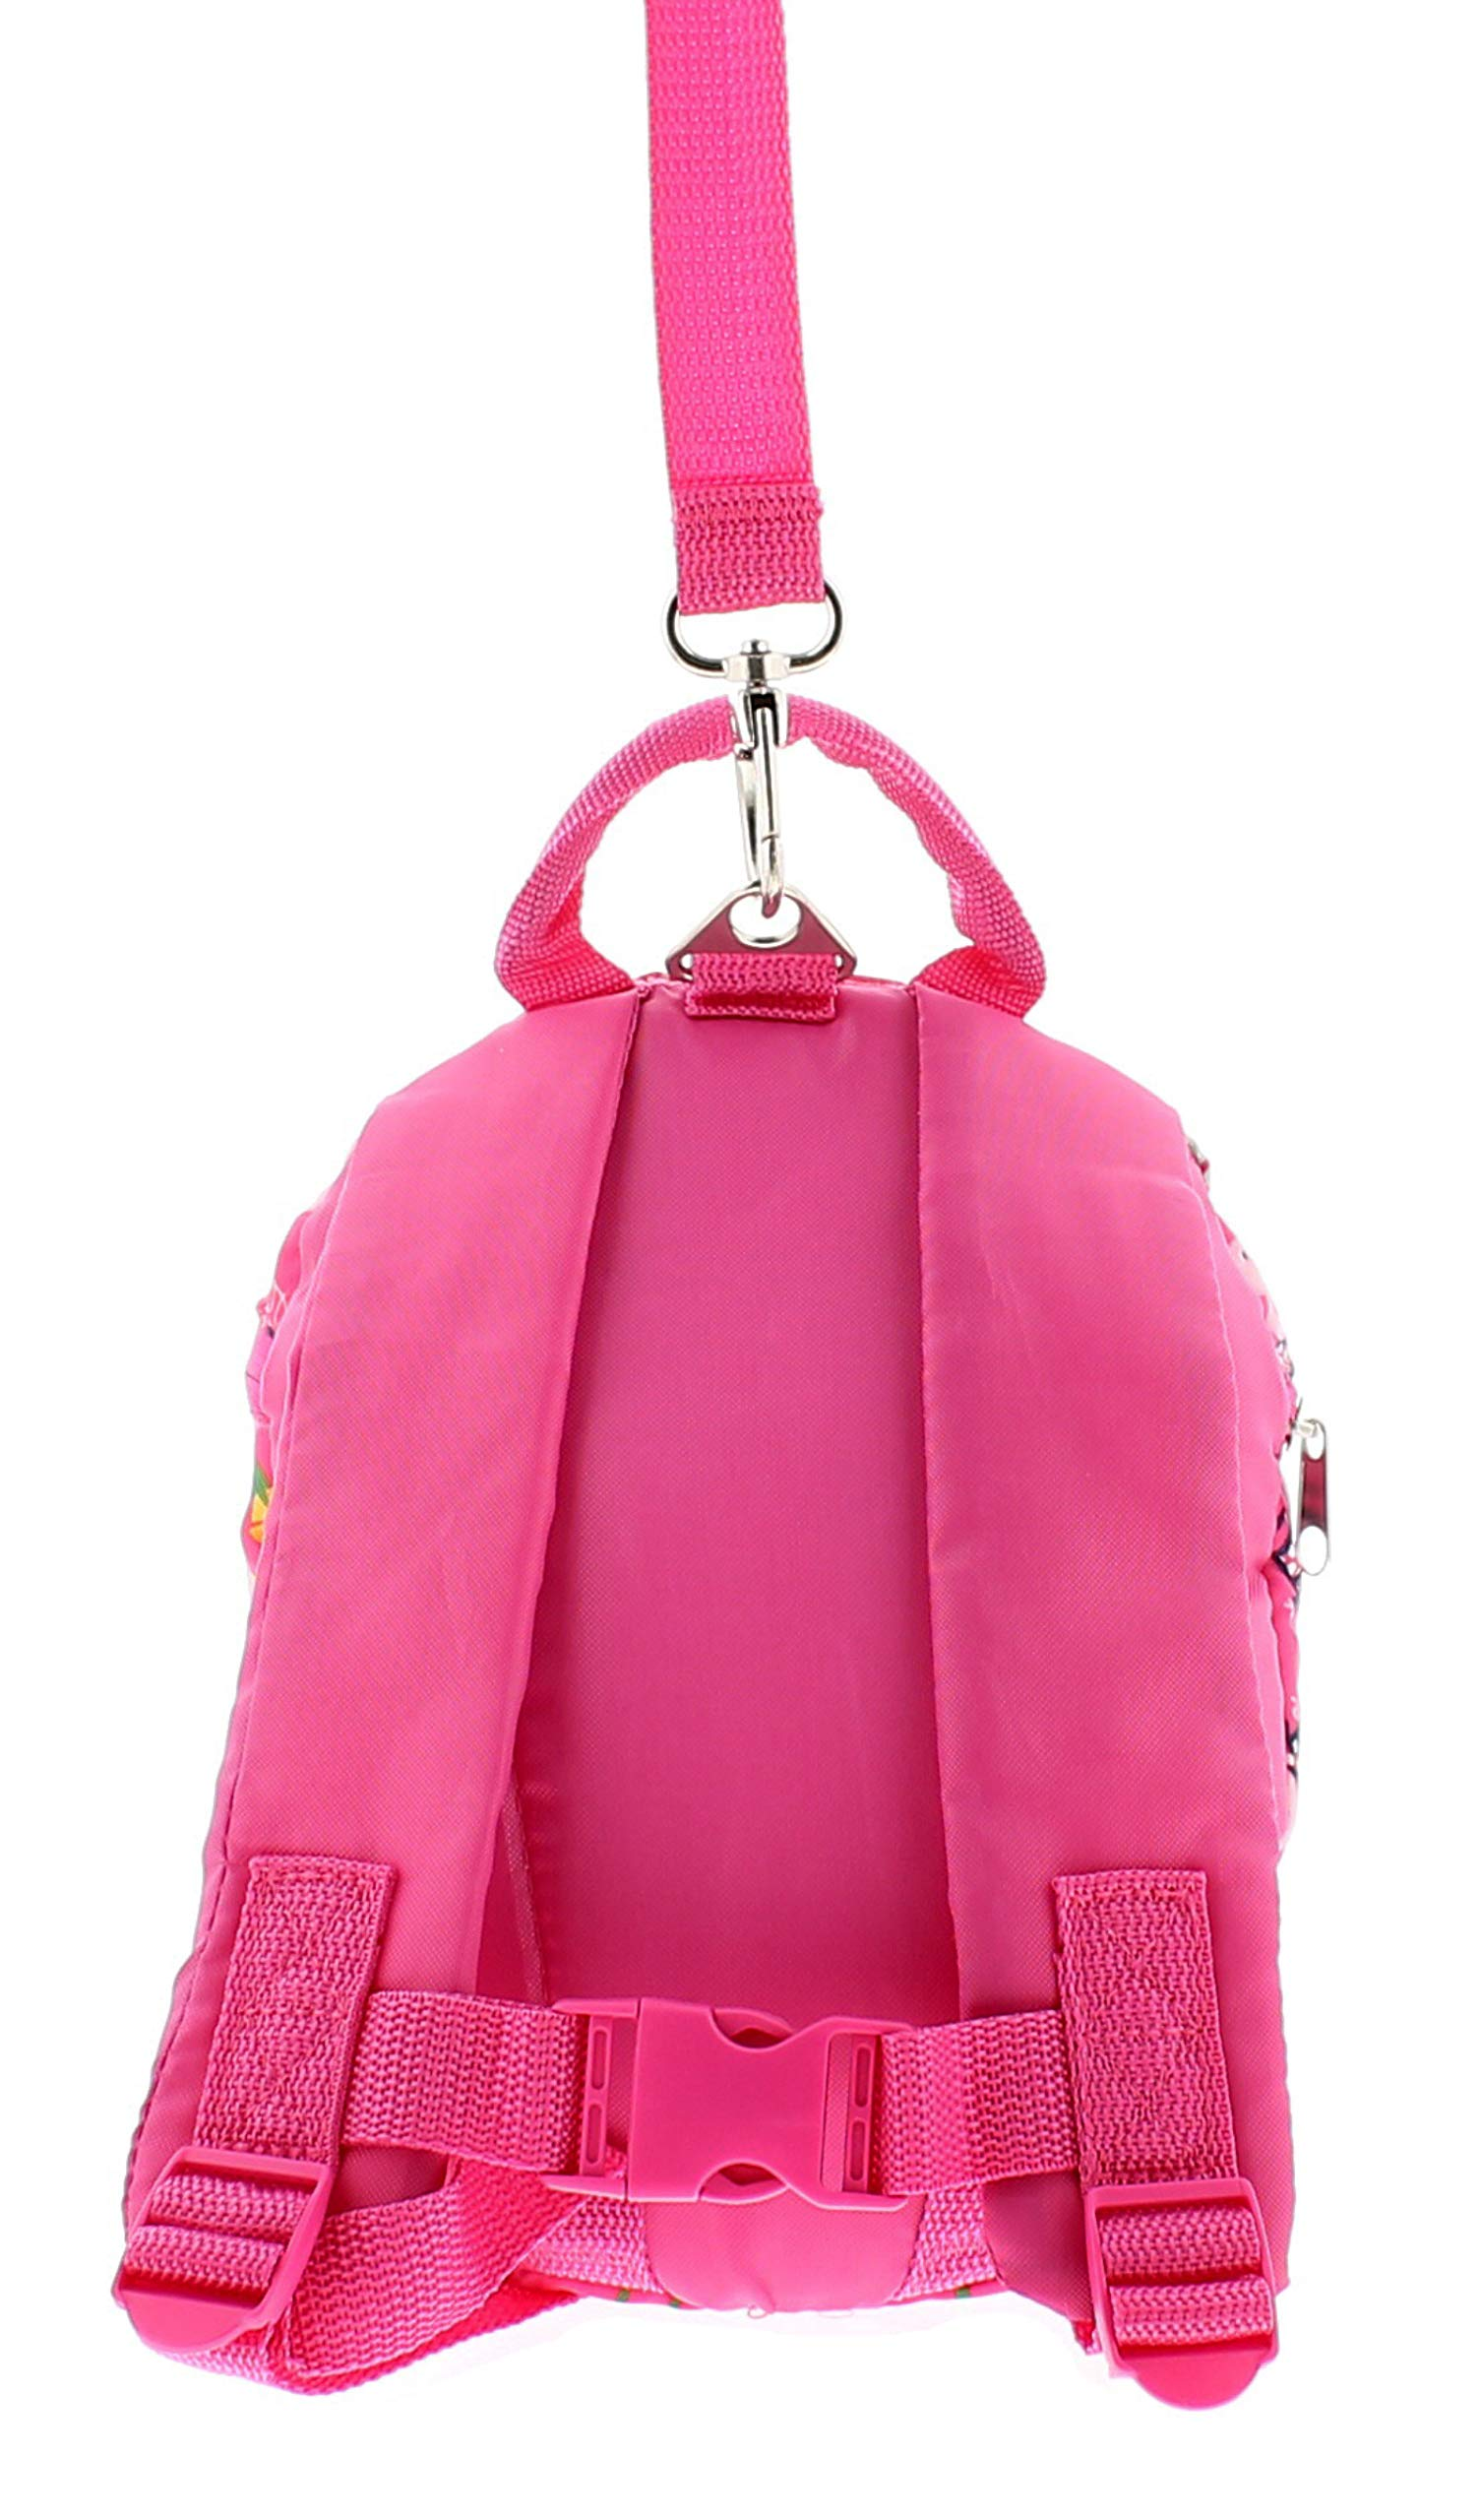 71myo3CNy8L - Peppa Pig Backpack Mochila Infantil, 32 Centimeters